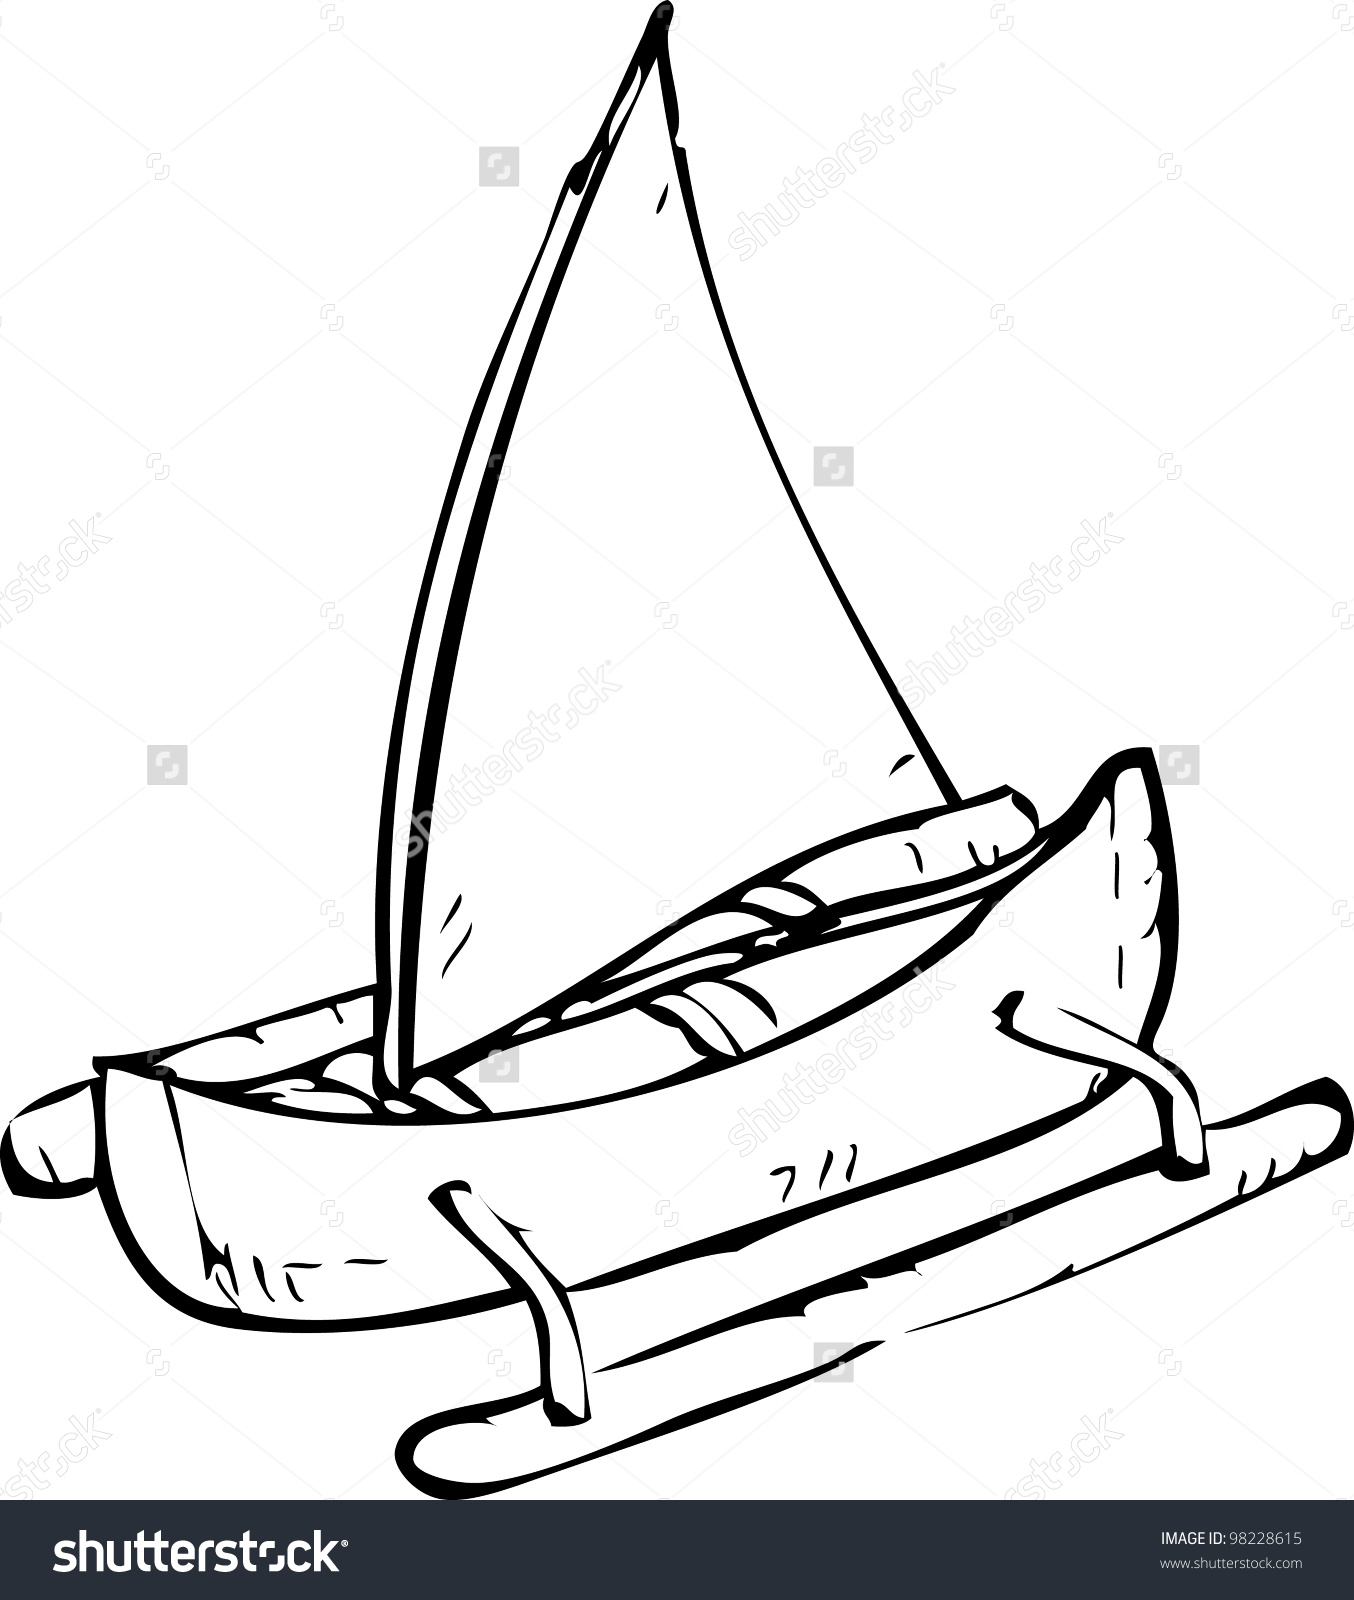 1354x1600 Simple Drawing Of Boat Simple Hand Drawing Sailing Boat Stock